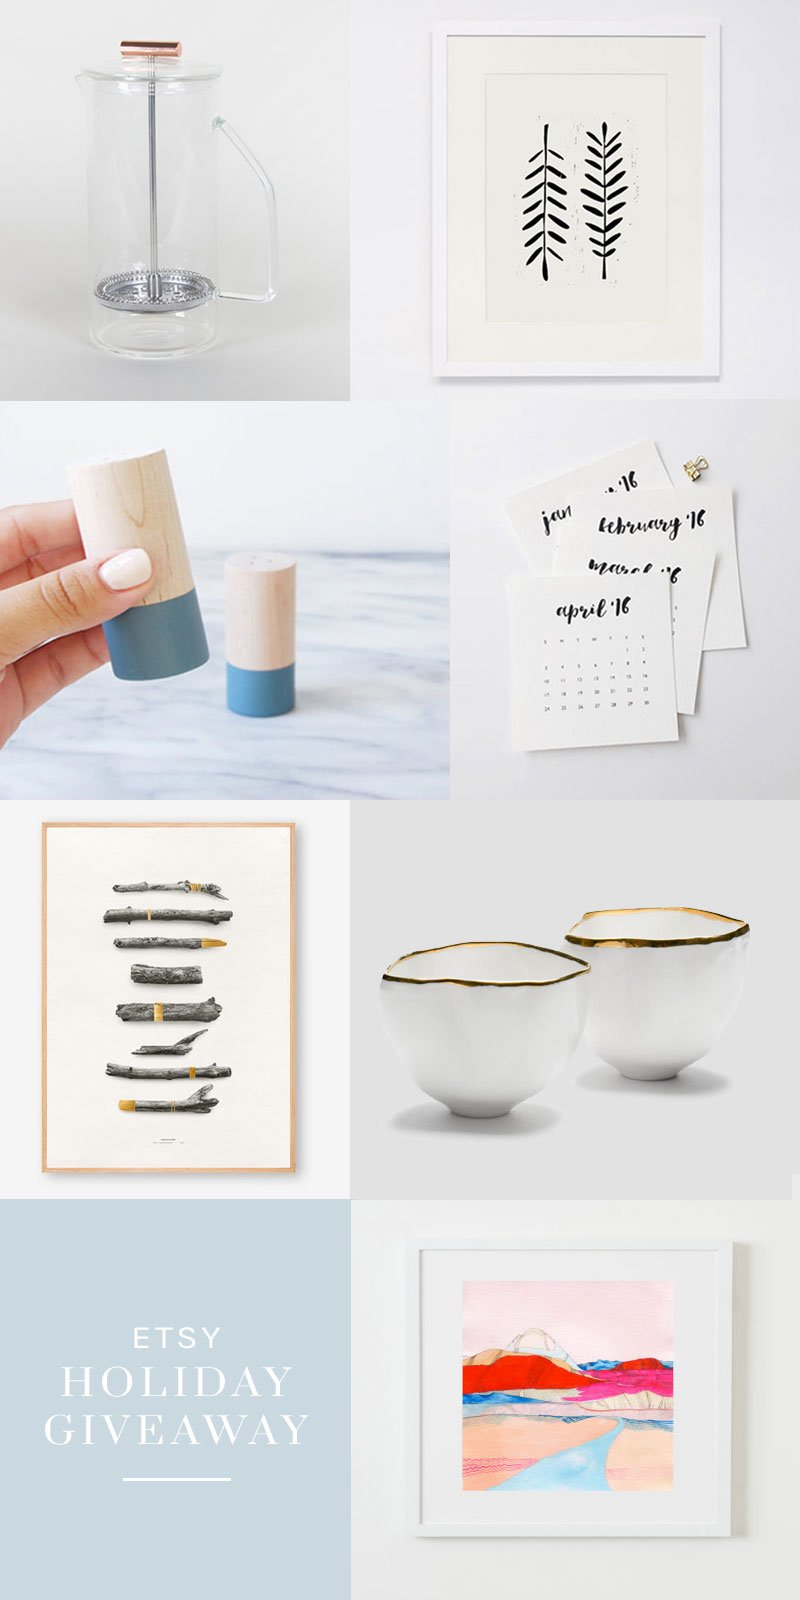 Etsy holiday giveaway with home decor, art prints, pottery, and a French press on Thou Swell